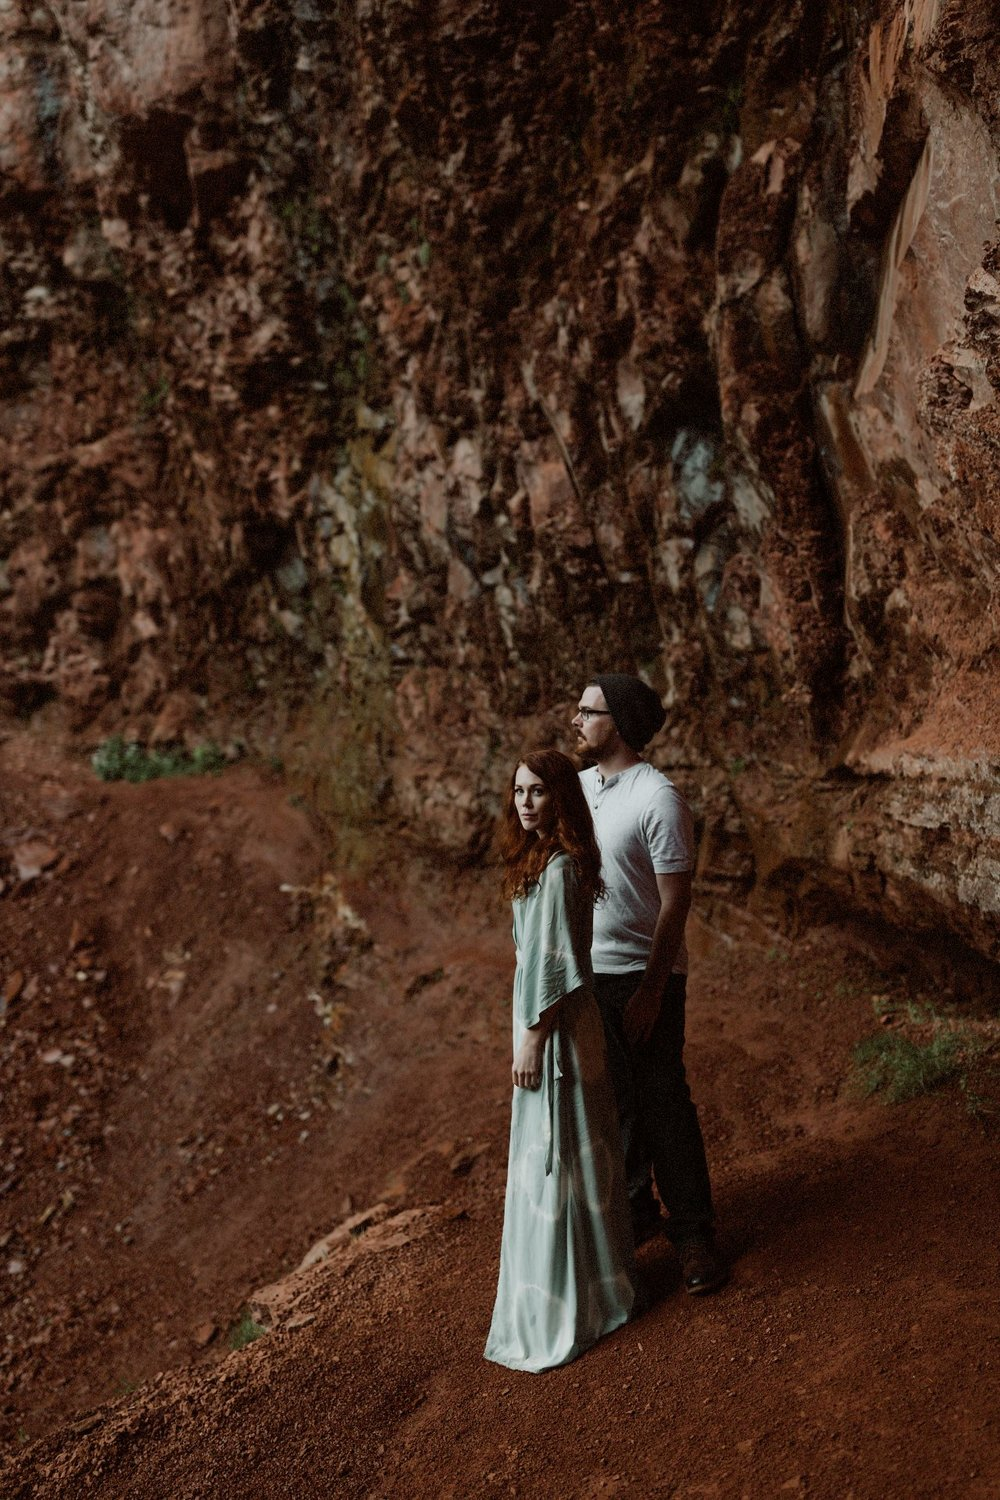 cornet-falls-telluride-adventure-session-12.jpg